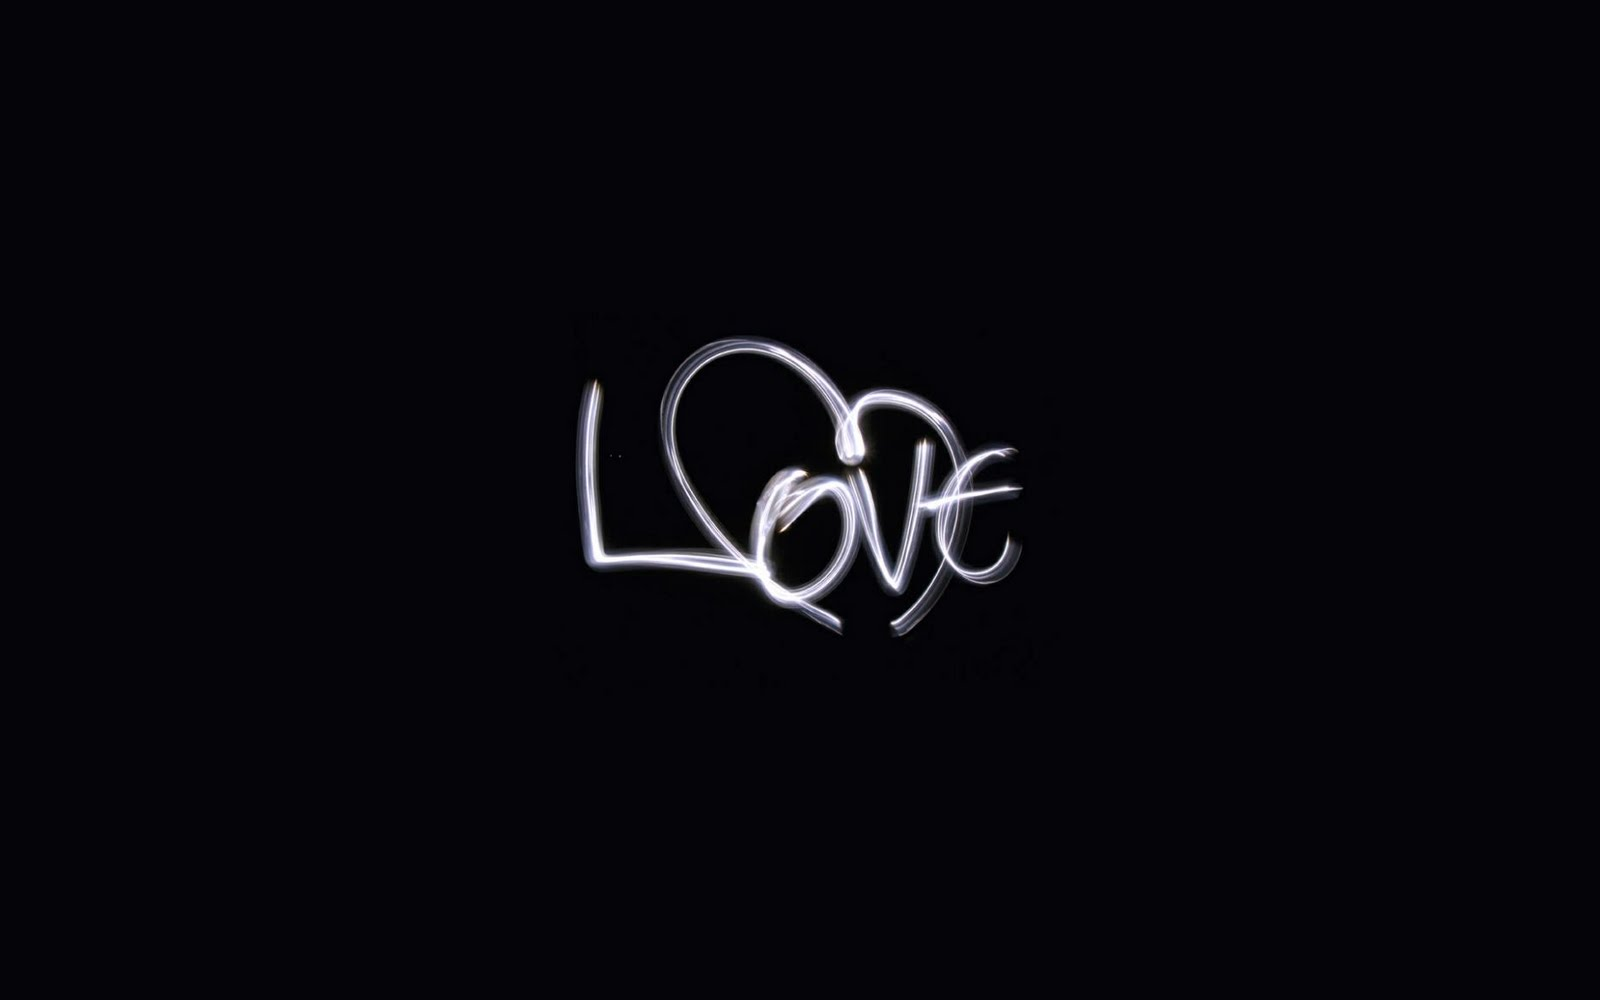 No Love Hd Wallpaper : Desktop Wallpapers,Animals Wallpapers,Flowers Wallpapers, Birds Wallpapers ,Sad Poetry ...